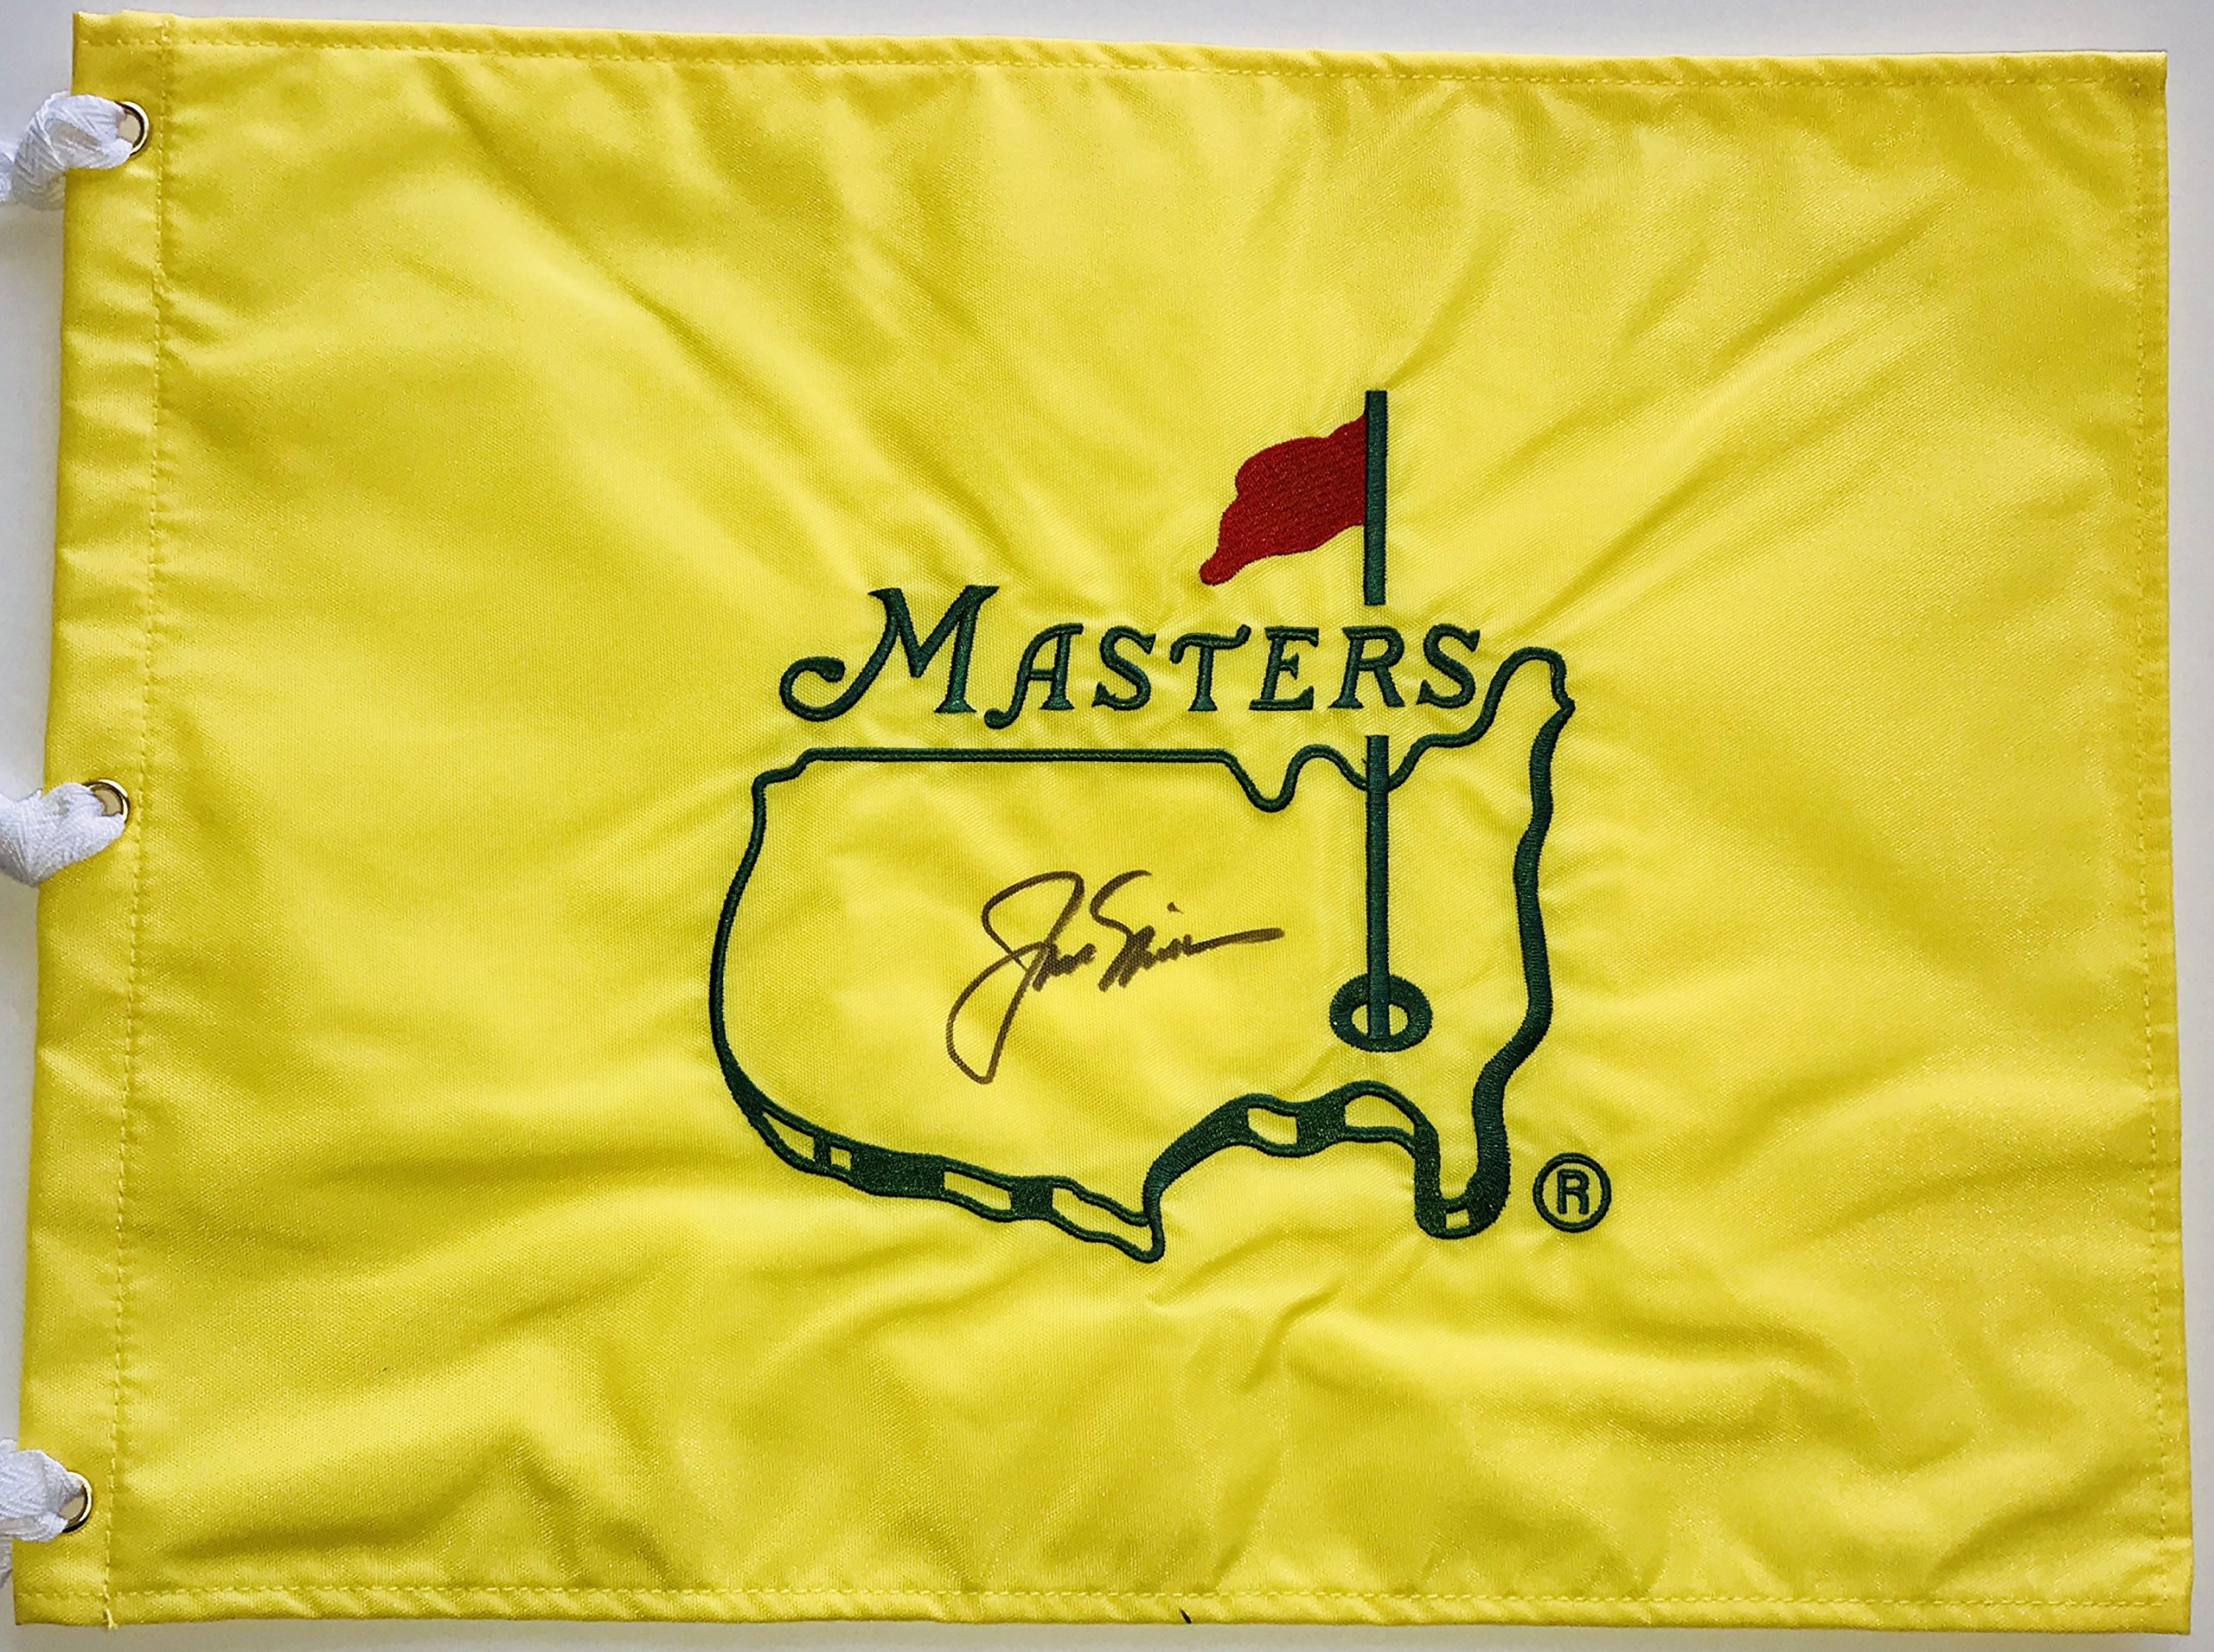 Jack Nicklaus signed Masters flag undated with psa dna loa augusta national golf